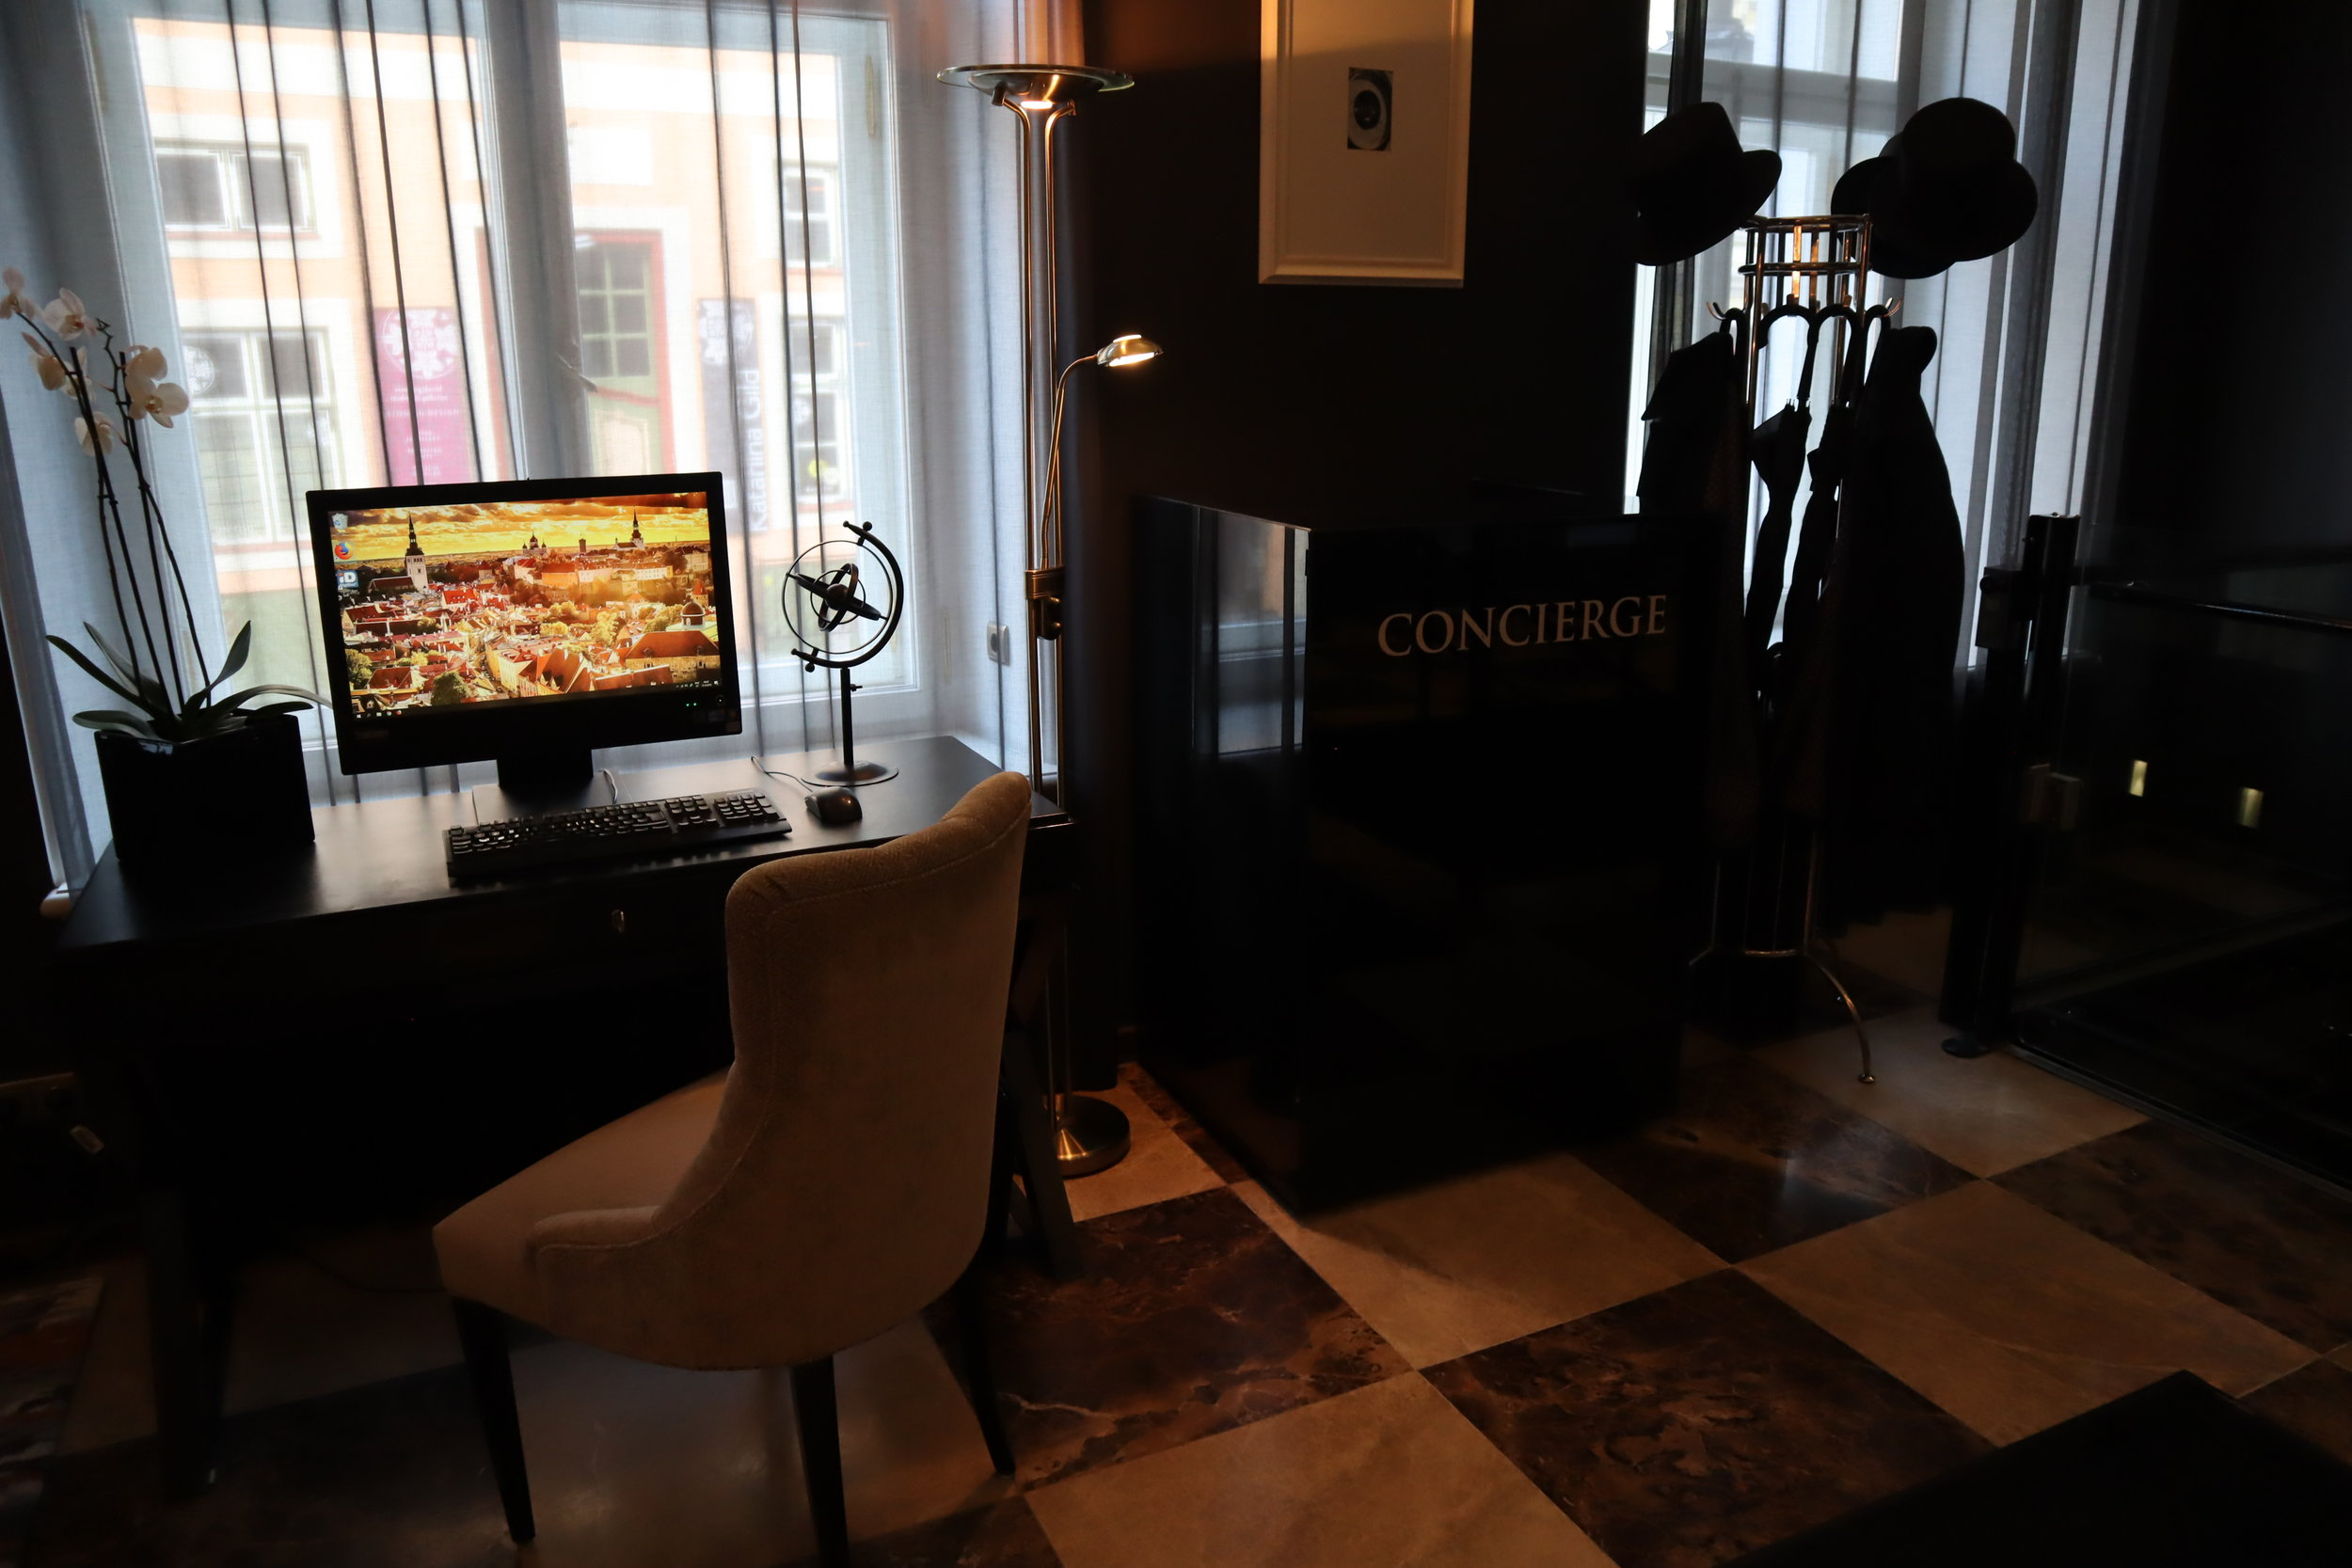 Hotel Telegraaf Tallinn – Concierge desk